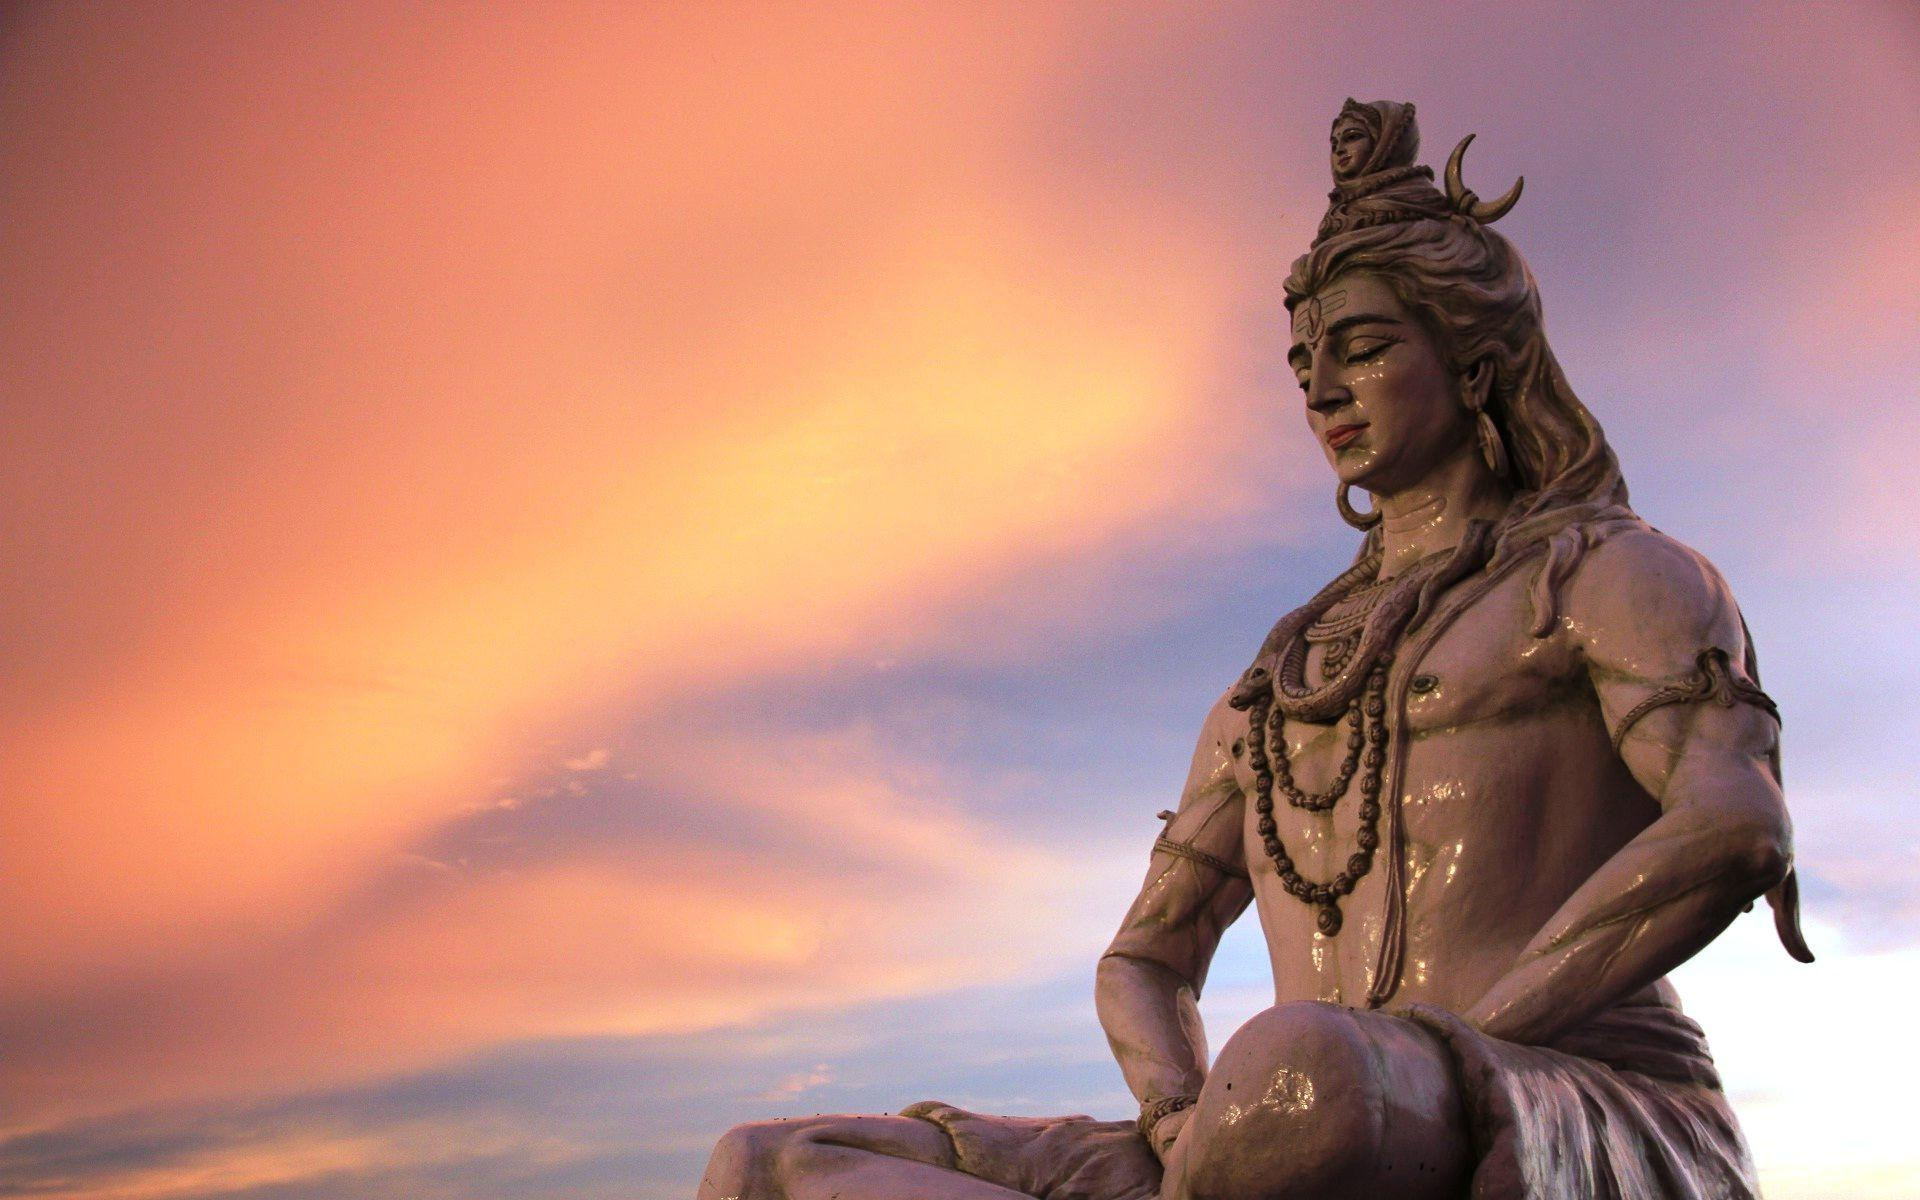 Lord Shiva Wallpapers Wallpaper Cave